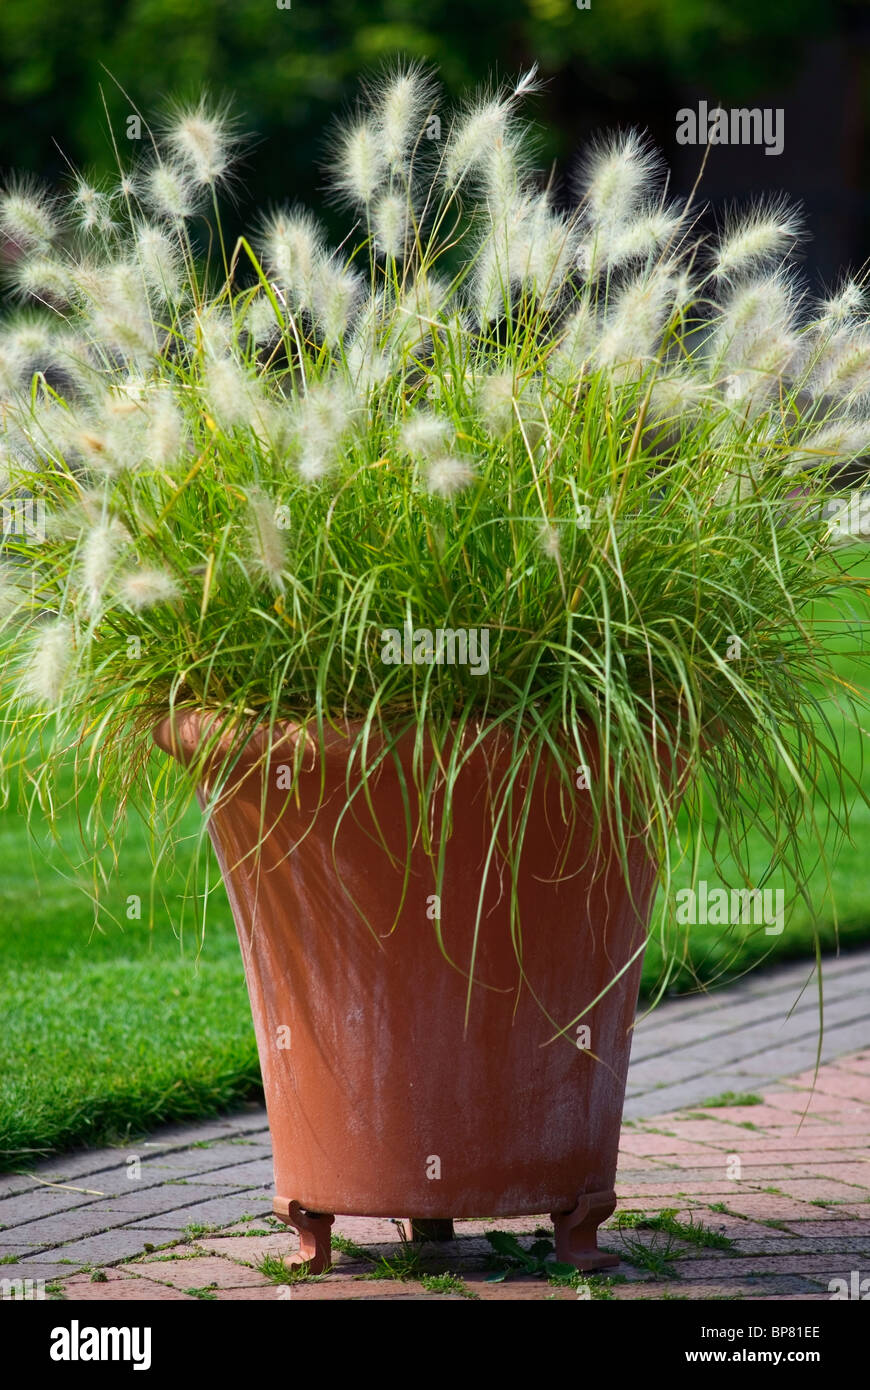 pennisetum villosum feather top growing in clay pot stock. Black Bedroom Furniture Sets. Home Design Ideas